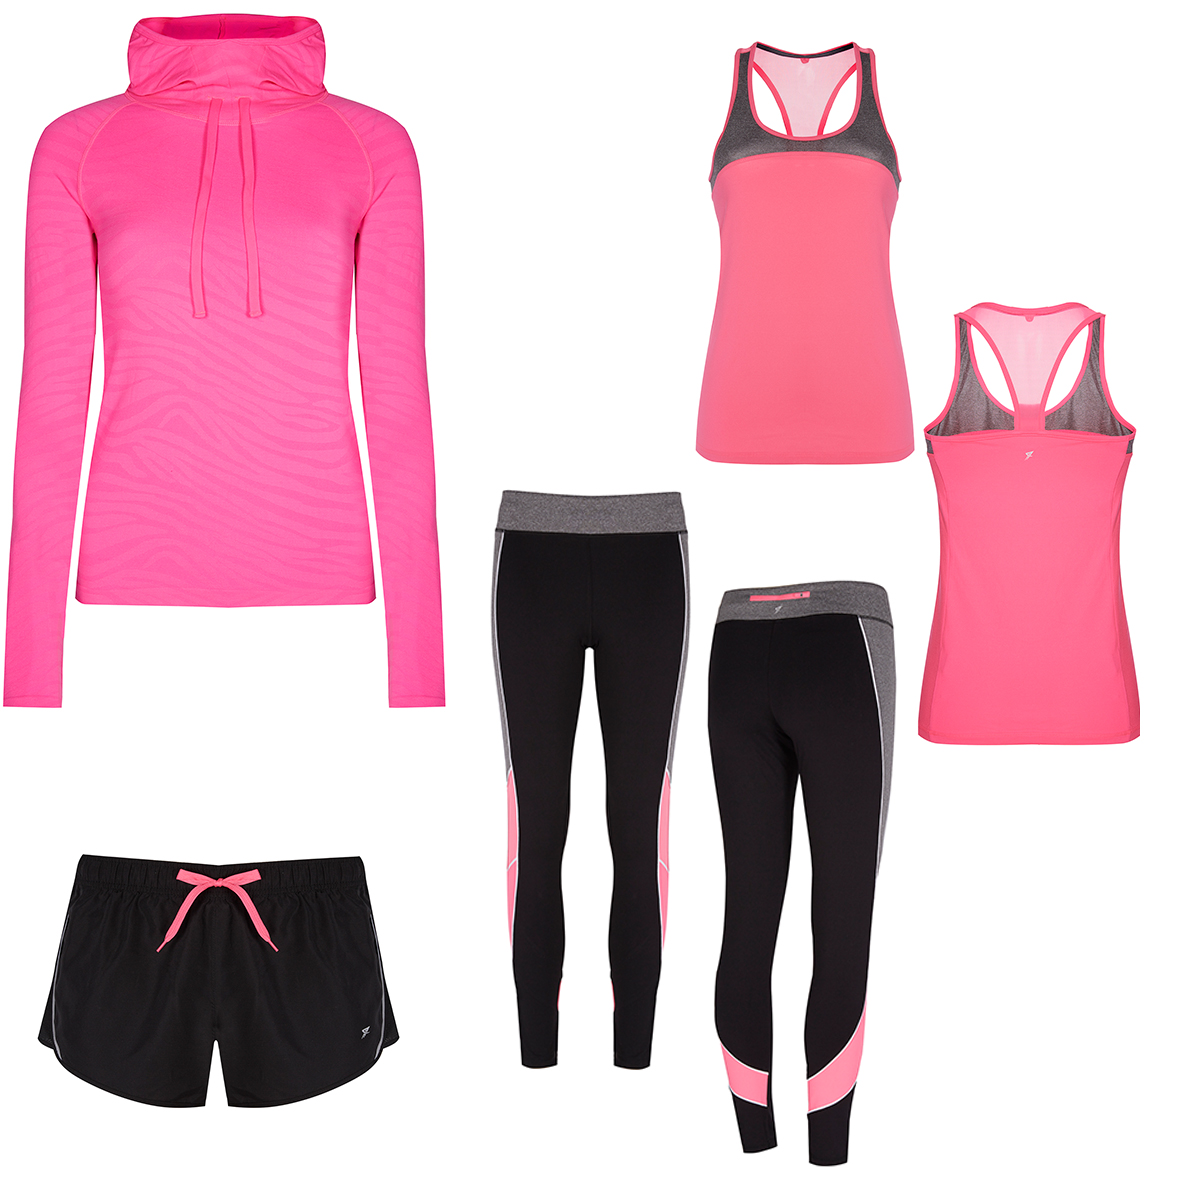 Pink jacket, €11; Pink vest, €8; Leggings, €13; Shorts, €5 all from Penneys